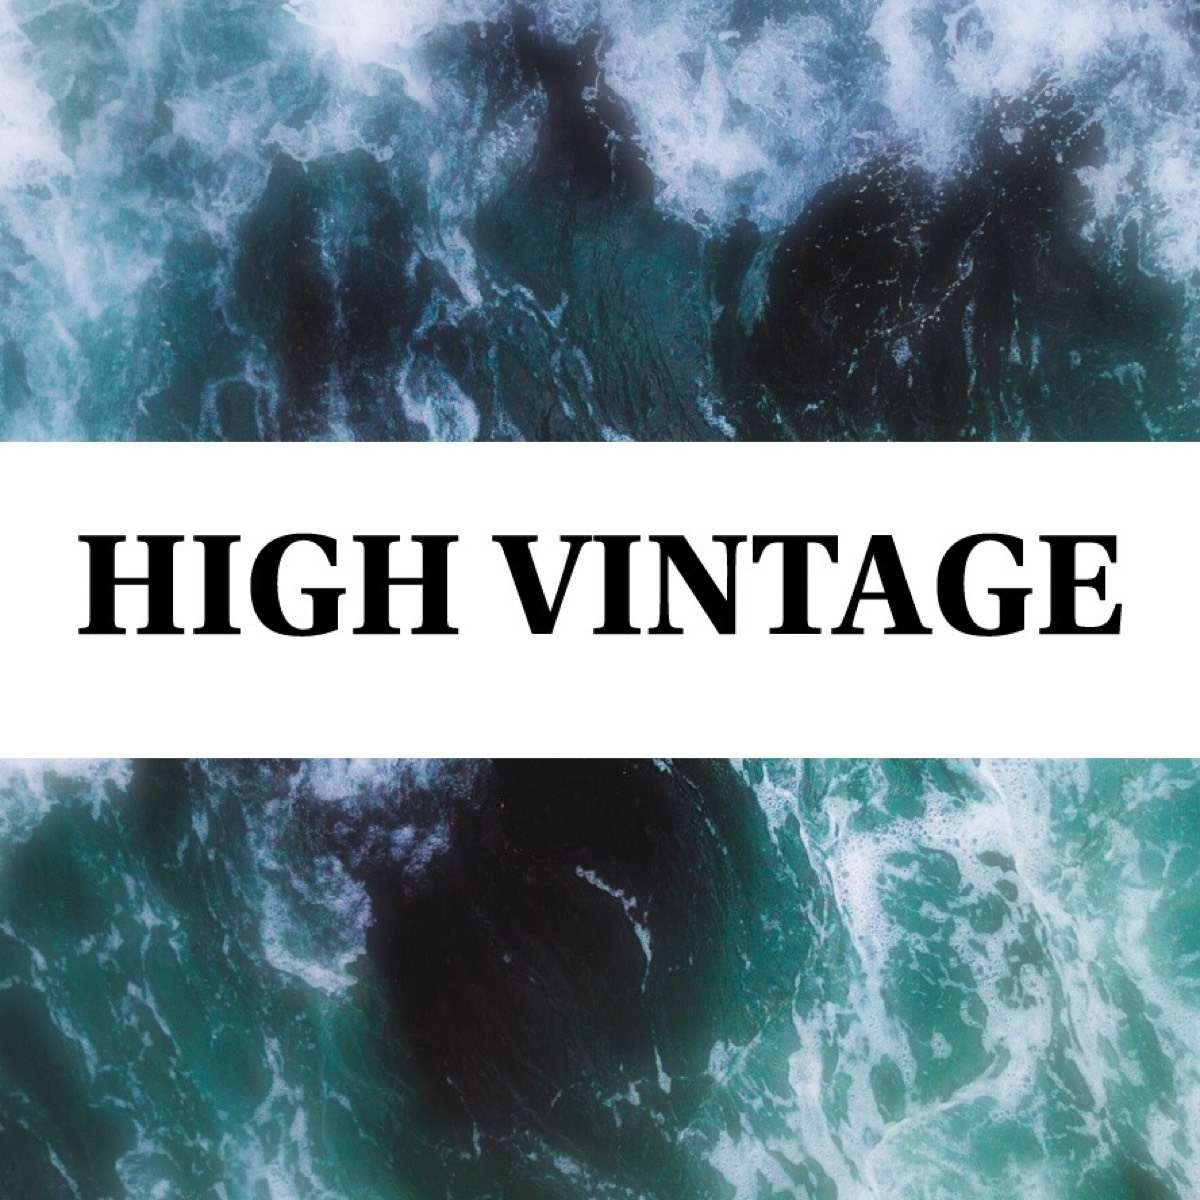 Bump profile picture for @highvintage